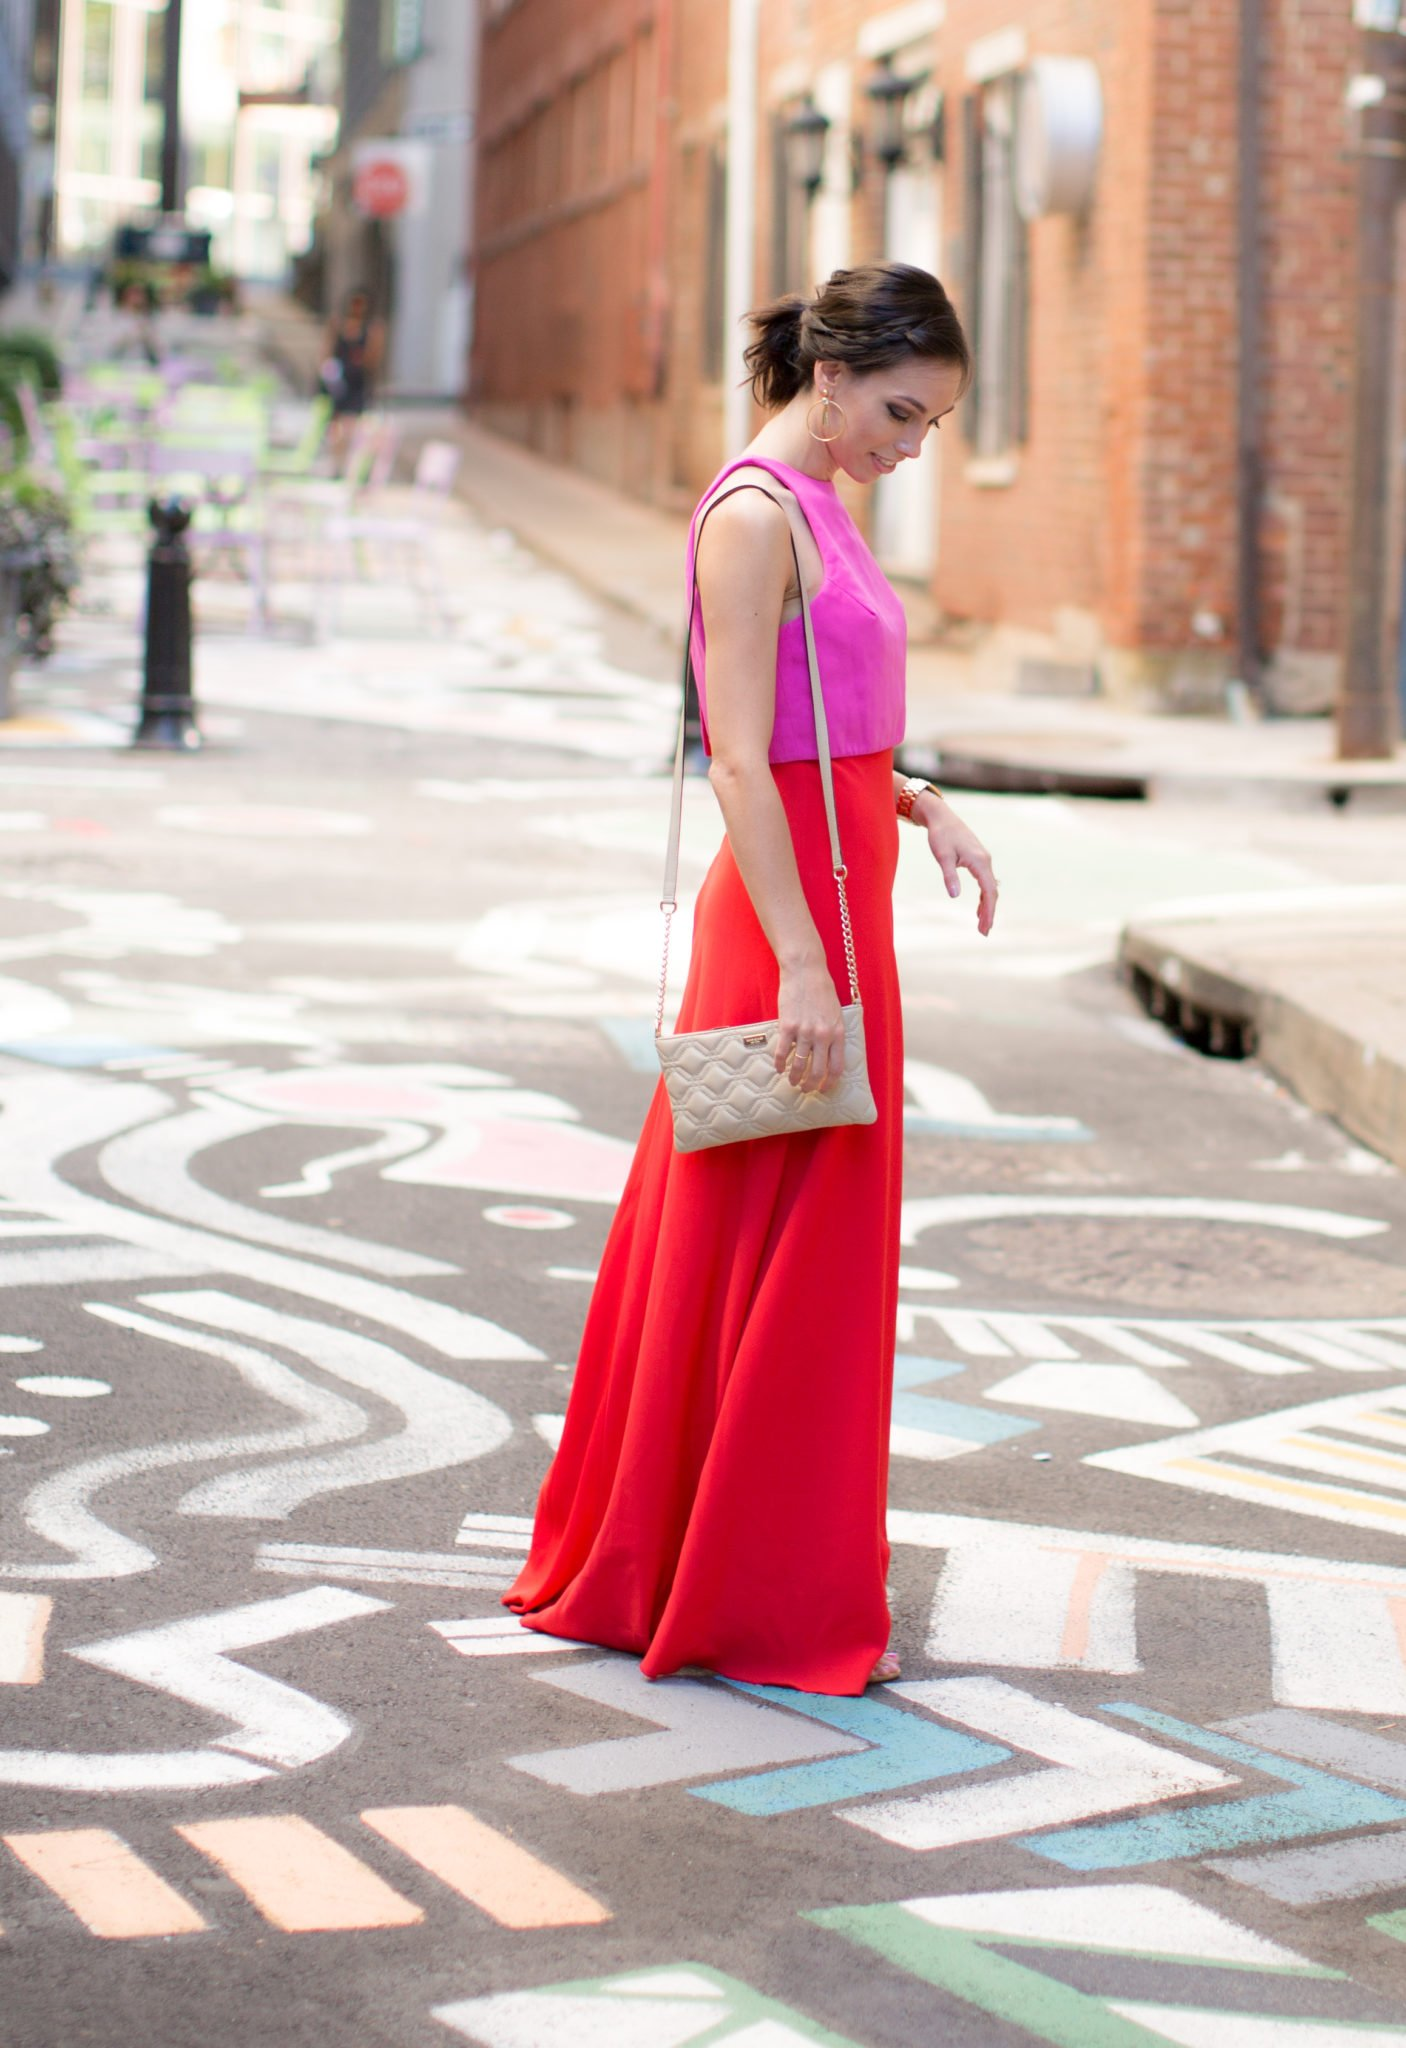 Rent the Runway Jill Stuart red and pink dress | Rent the Runway Wedding Guest Attire featured by top US fashion blog, Wellesley & King: image of a woman wearing a Jill Stuart dress available at Rent the Runway, J Crew hoop earrings, Steve Madden shoes, Marciano bag and Michael Kors watch